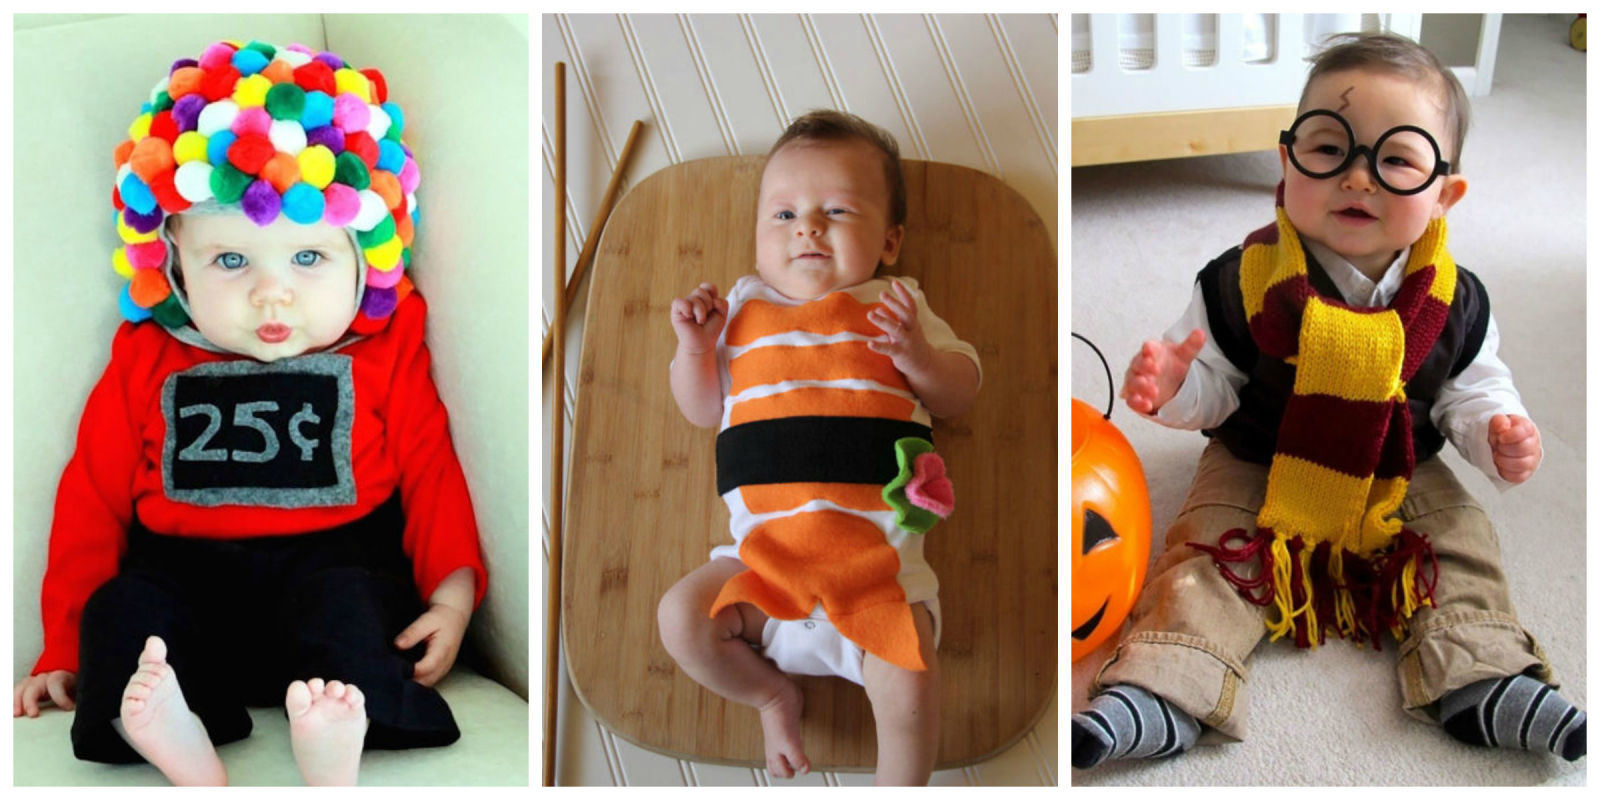 cute diy baby halloween costume ideas best homemade infant halloween costumes - Diy Halloween Baby Costumes